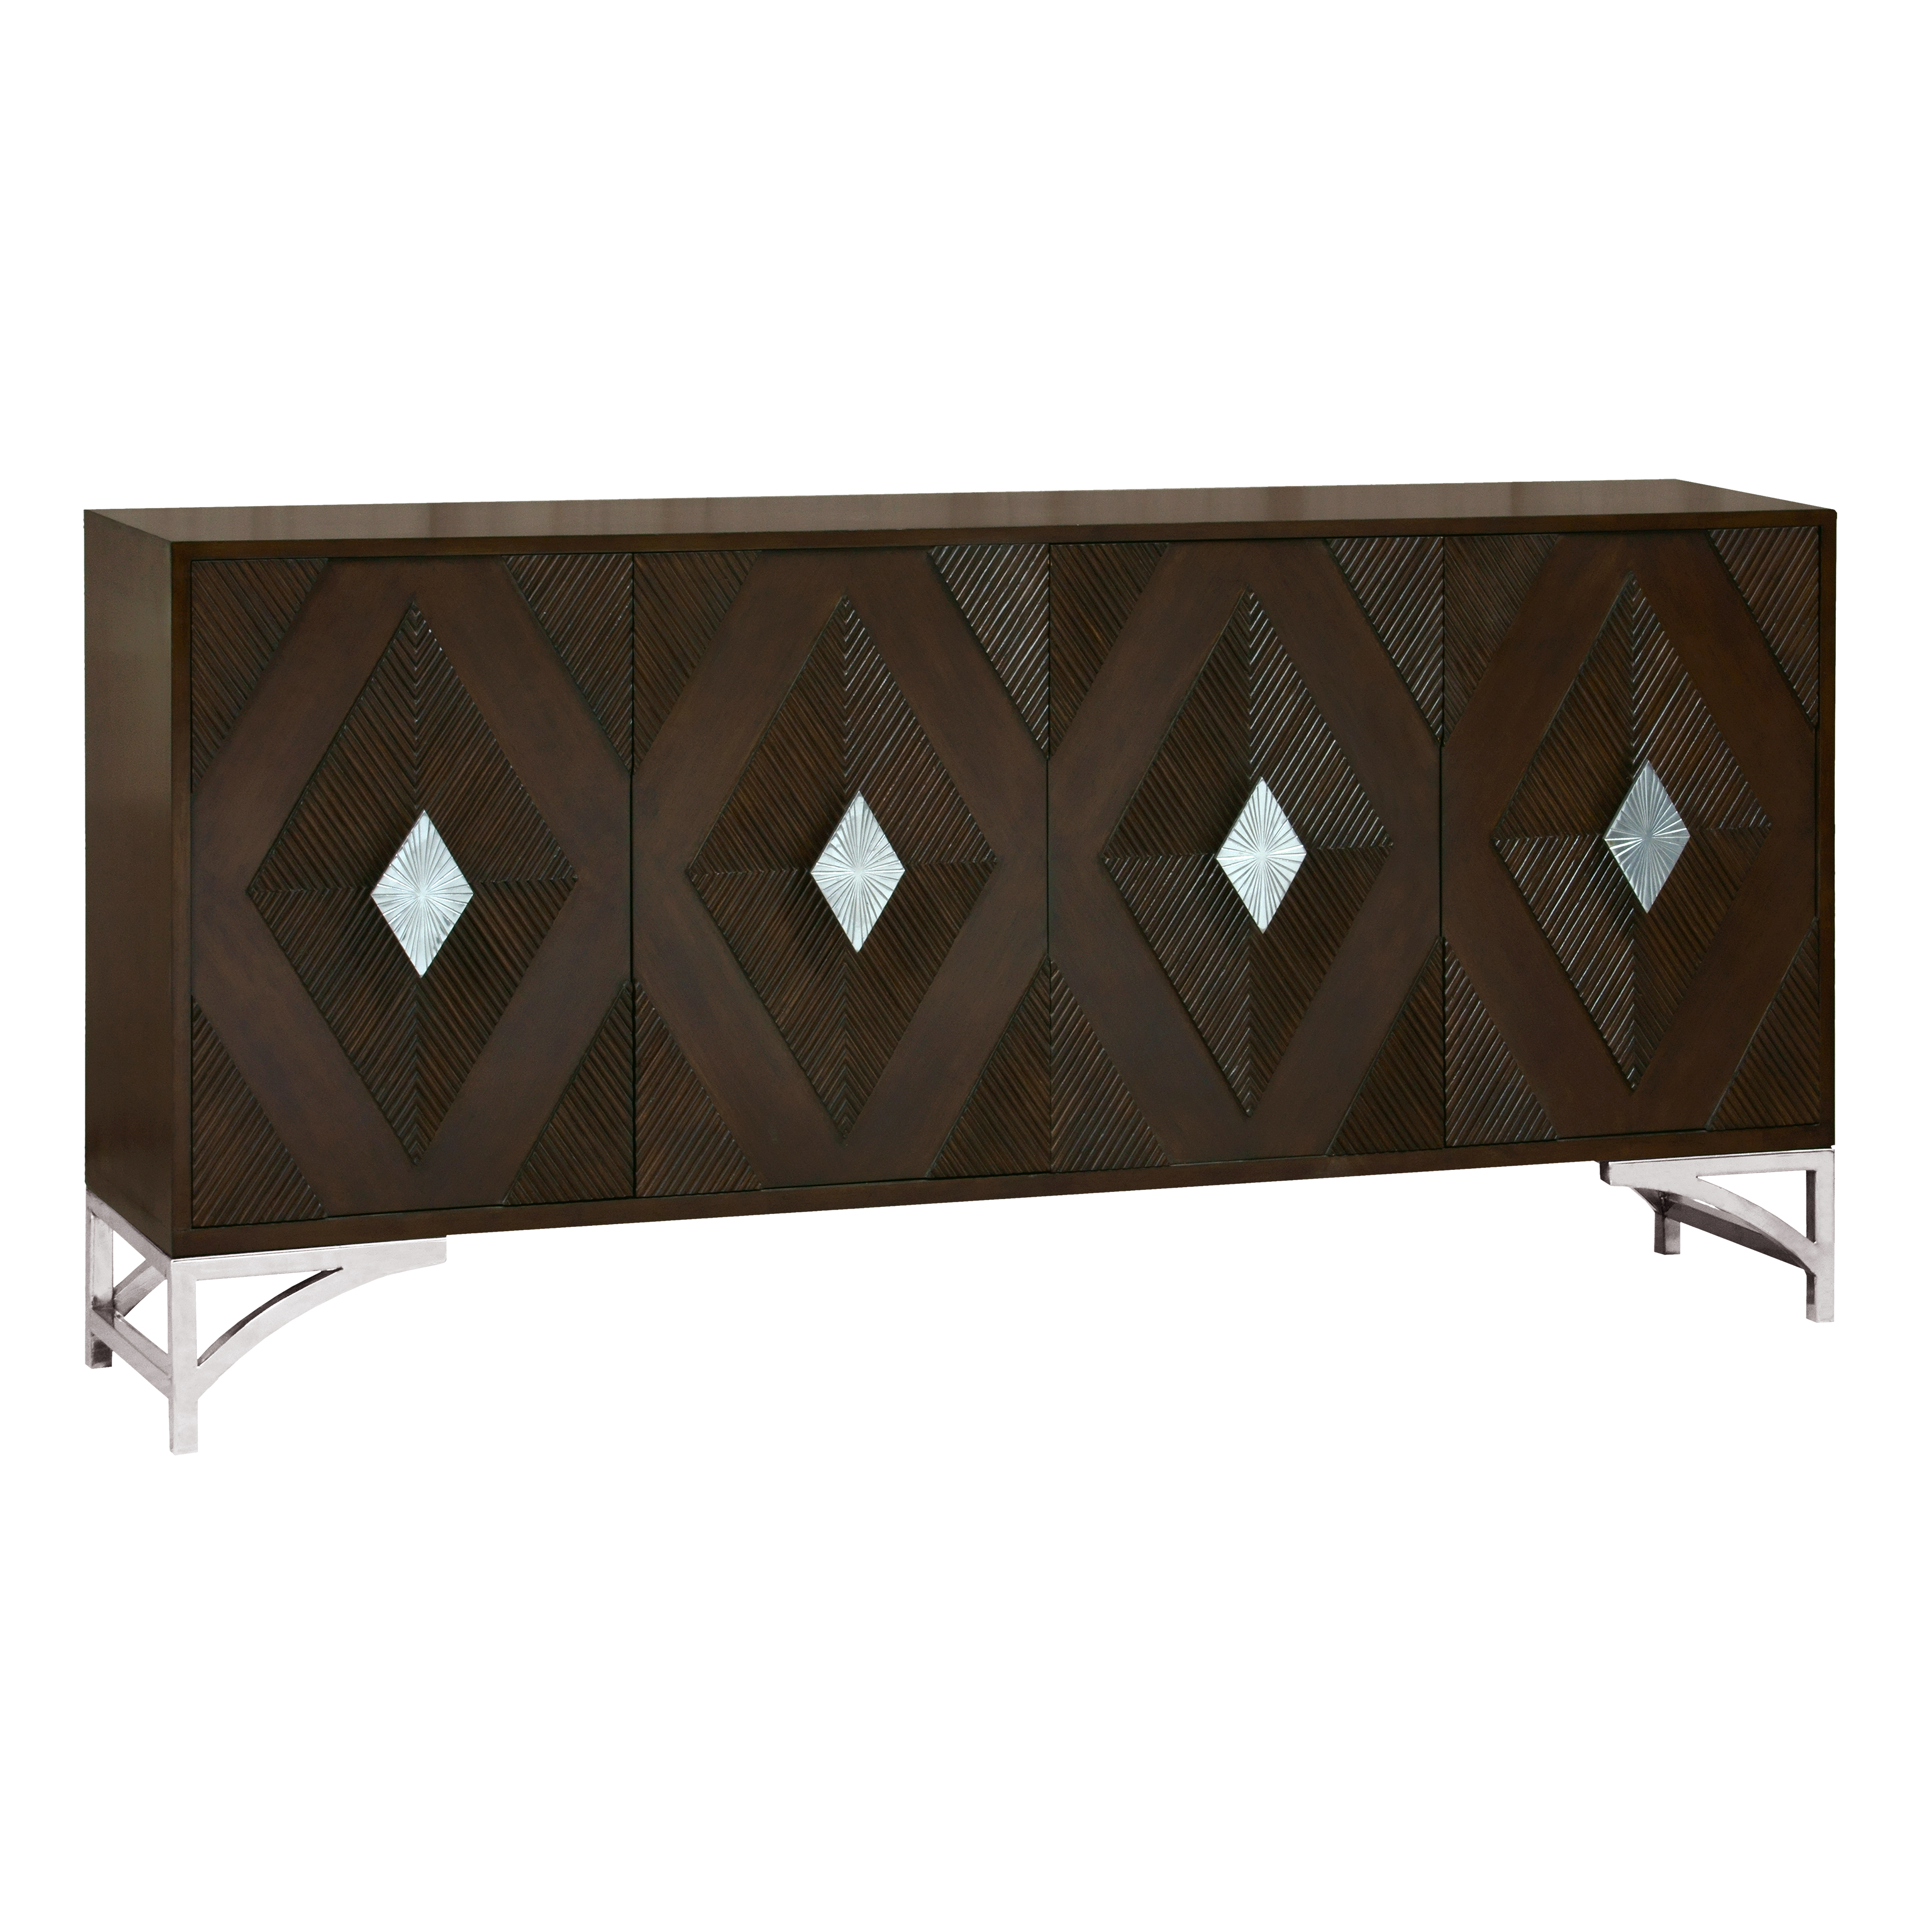 Stein World Hunt 4 Door Credenza